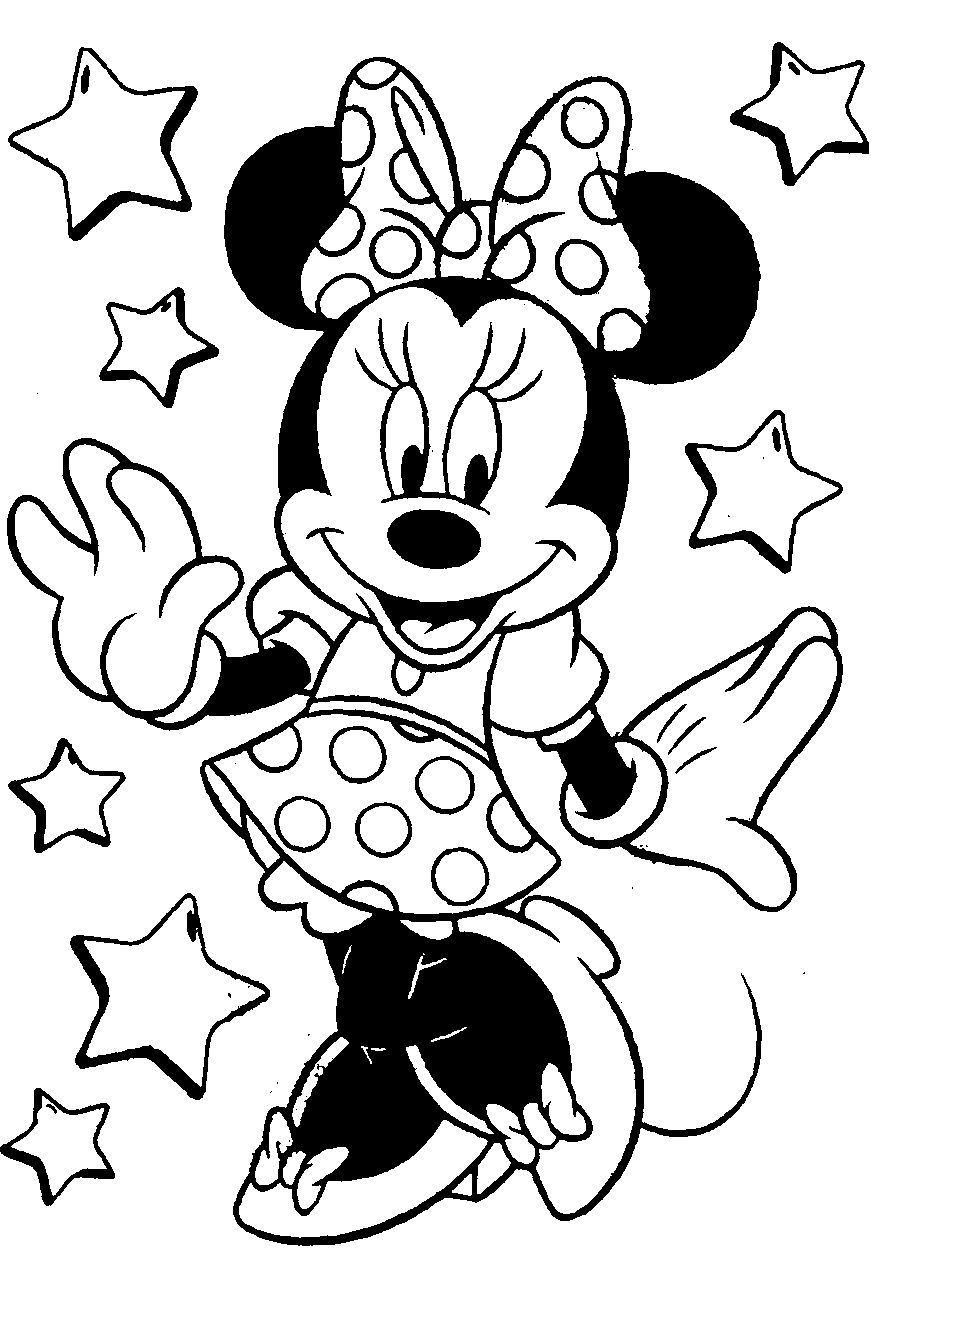 Cute Minnie Mouse Coloring Pages